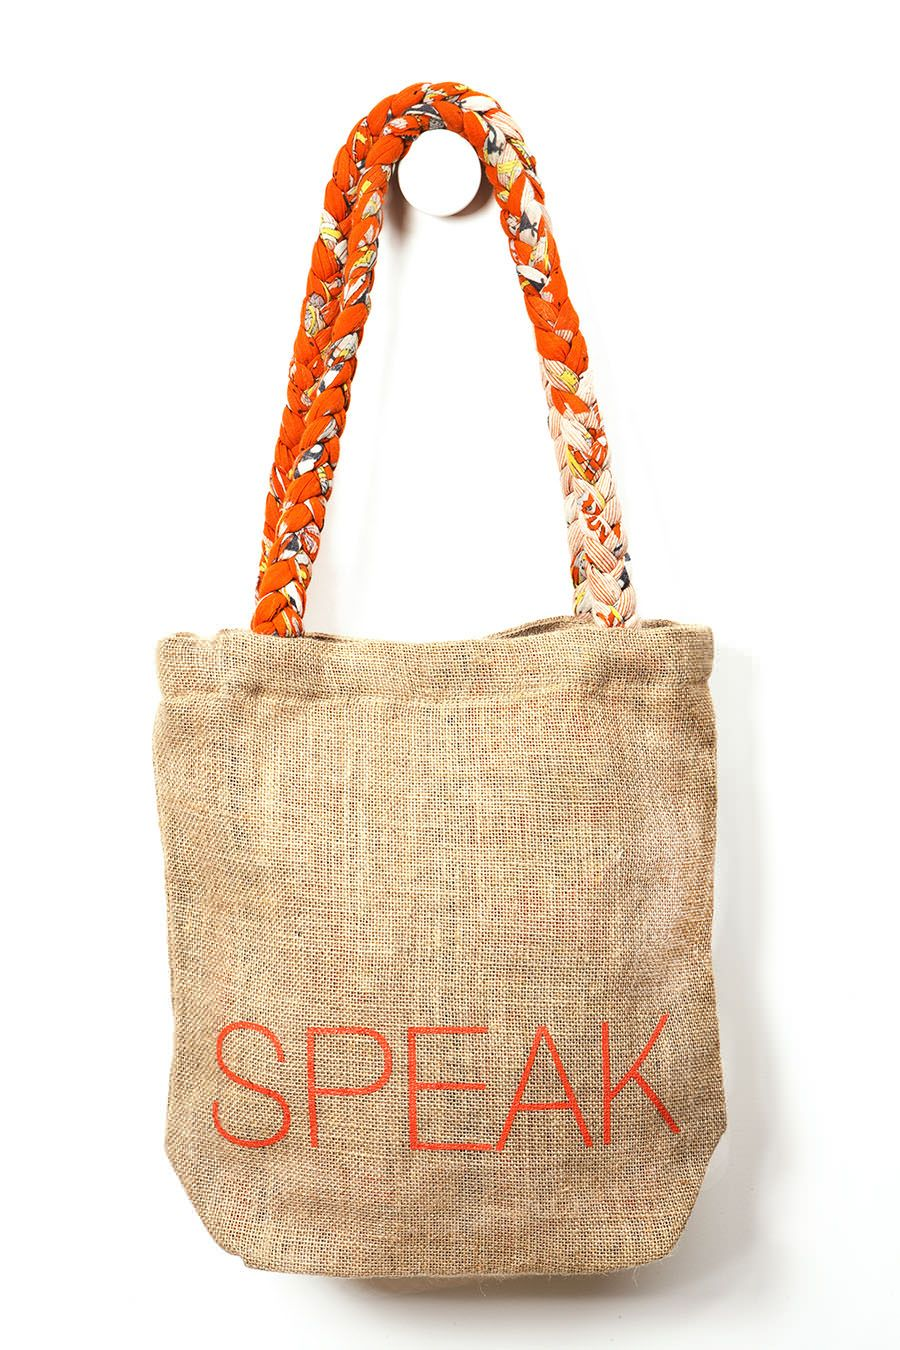 hearts fashion, sustainable fashion, speak carry all tote, amy's vintage closet